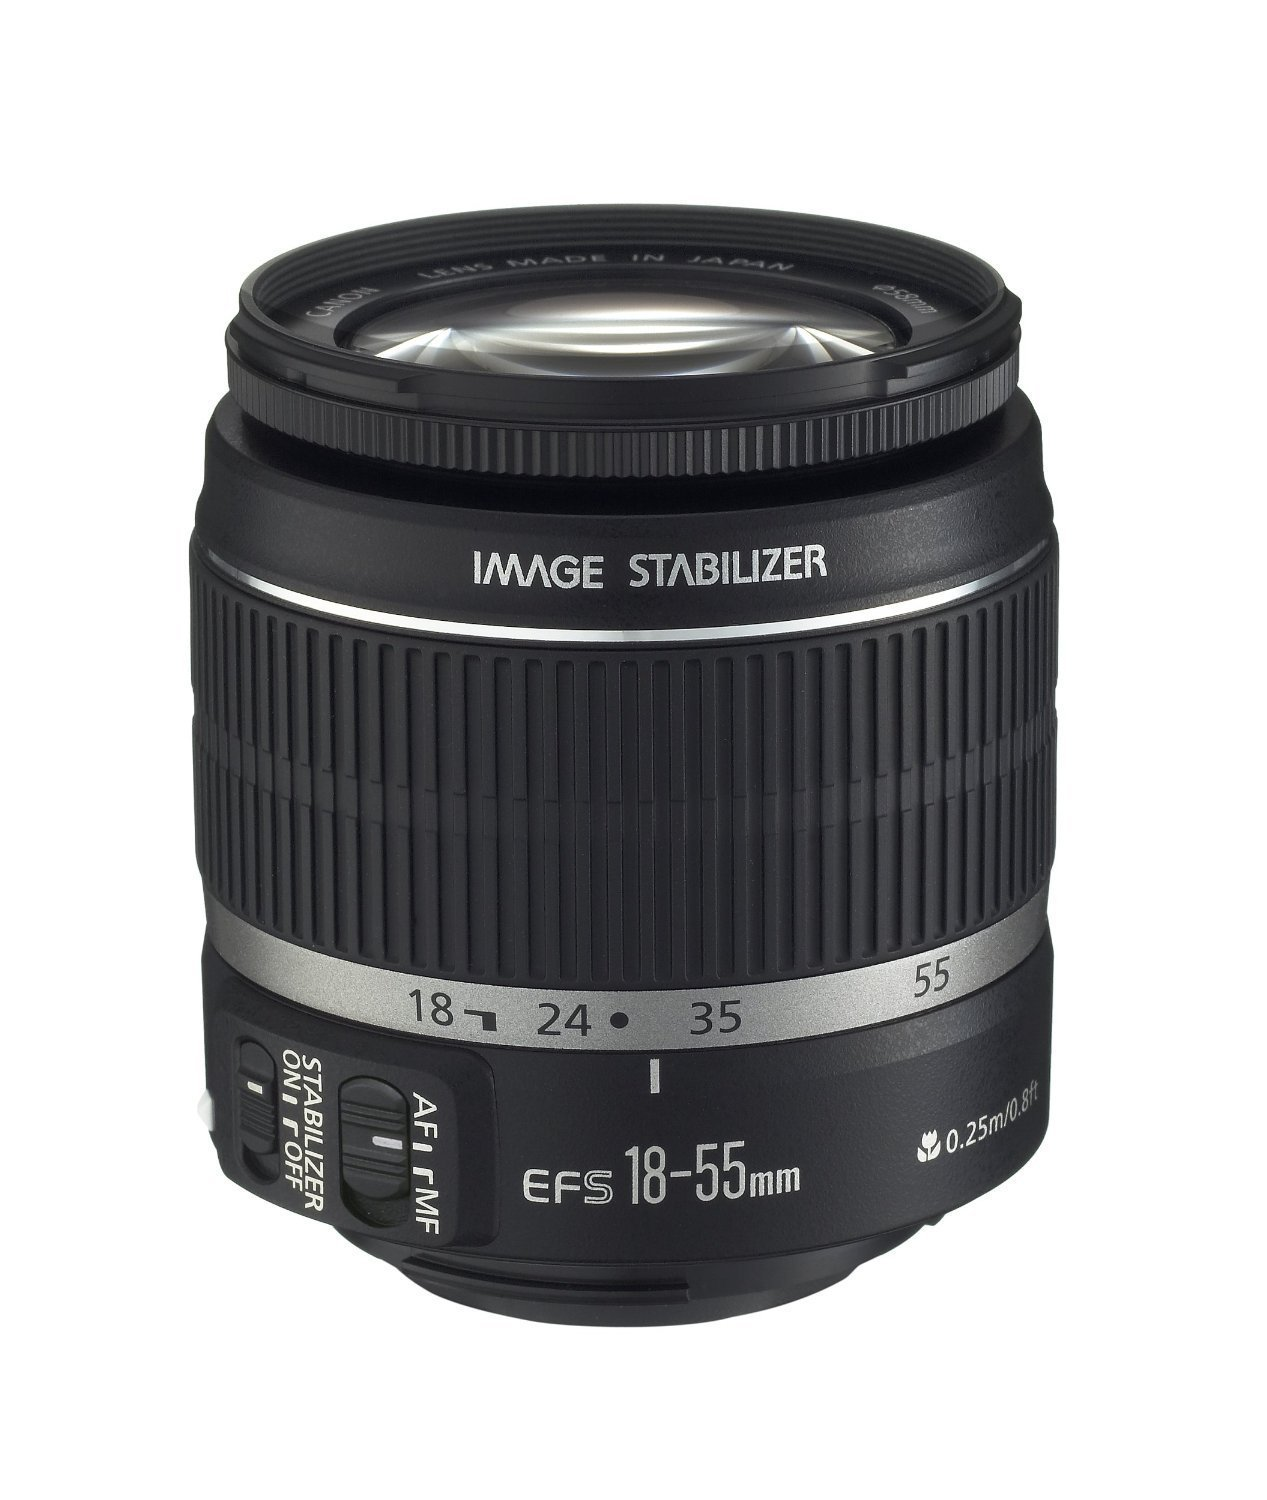 Canon EF-S 18-55mm f/3.5-5.6 IS II Lens Image